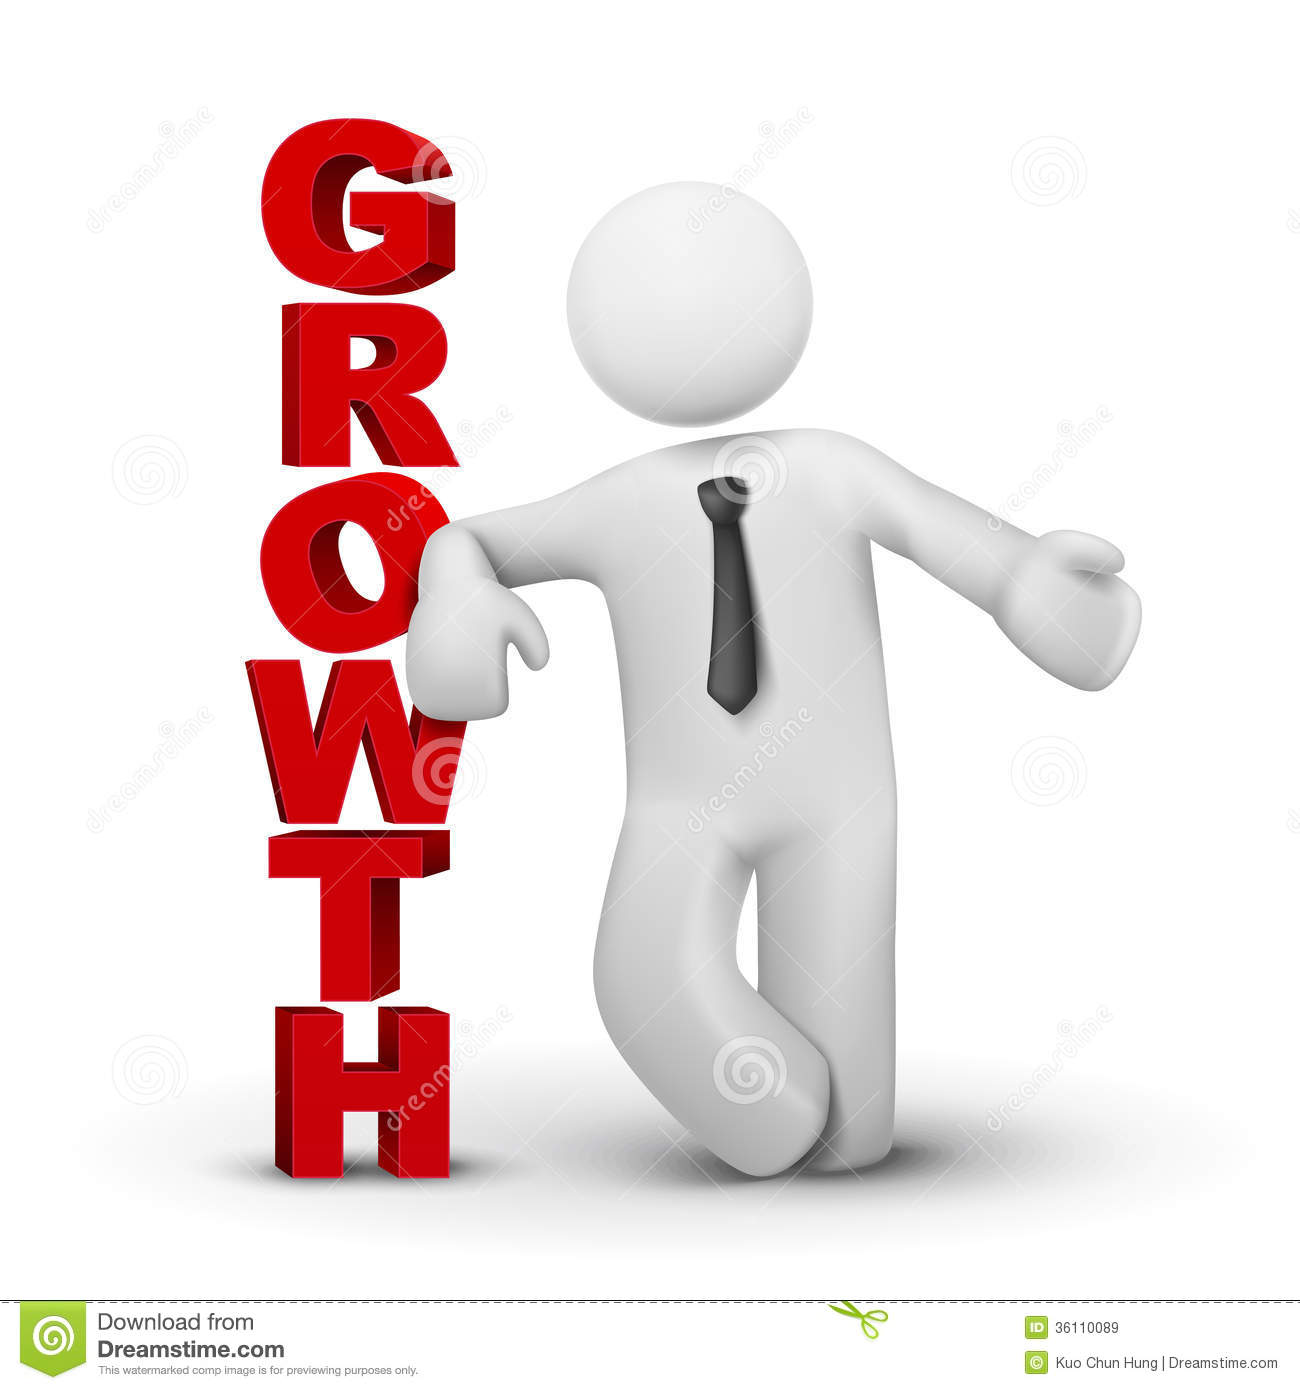 d-business-man-presenting-word-growth-concept-white-background-36110089.jpg